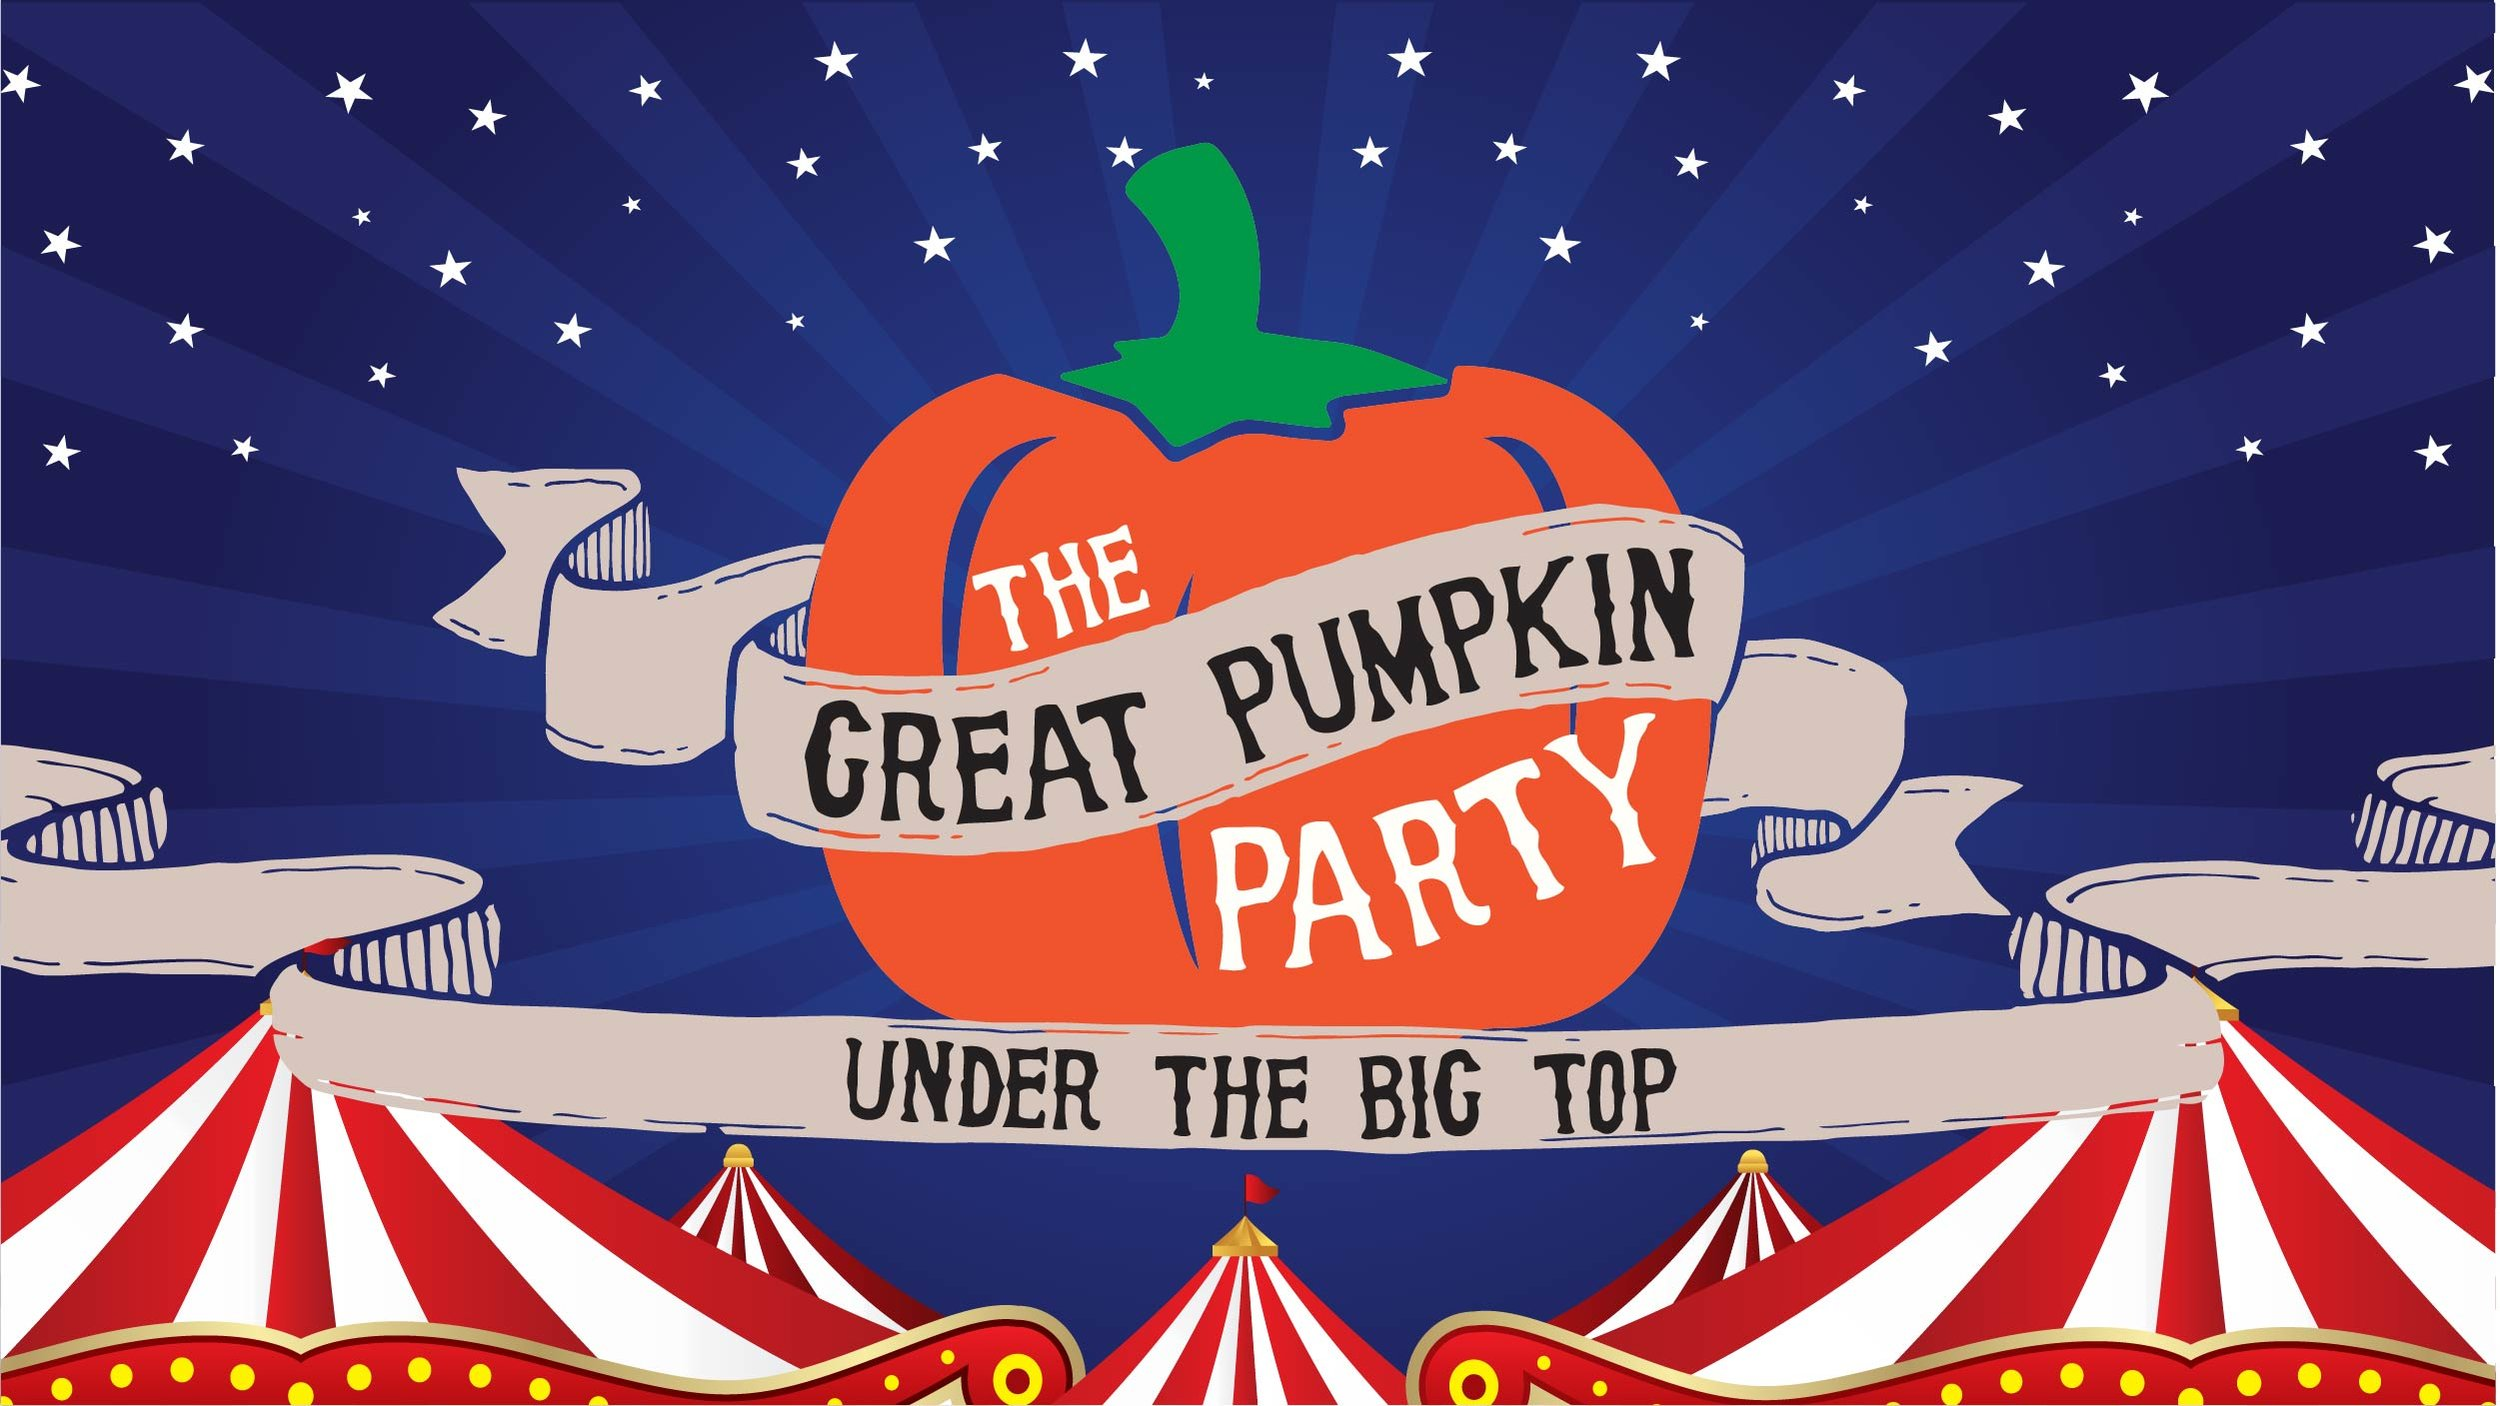 A giant pumpkin floats above a circus, surrounded by a starry sky. 'The Great Pumpkin Party: Under the Big Top' is written on top.